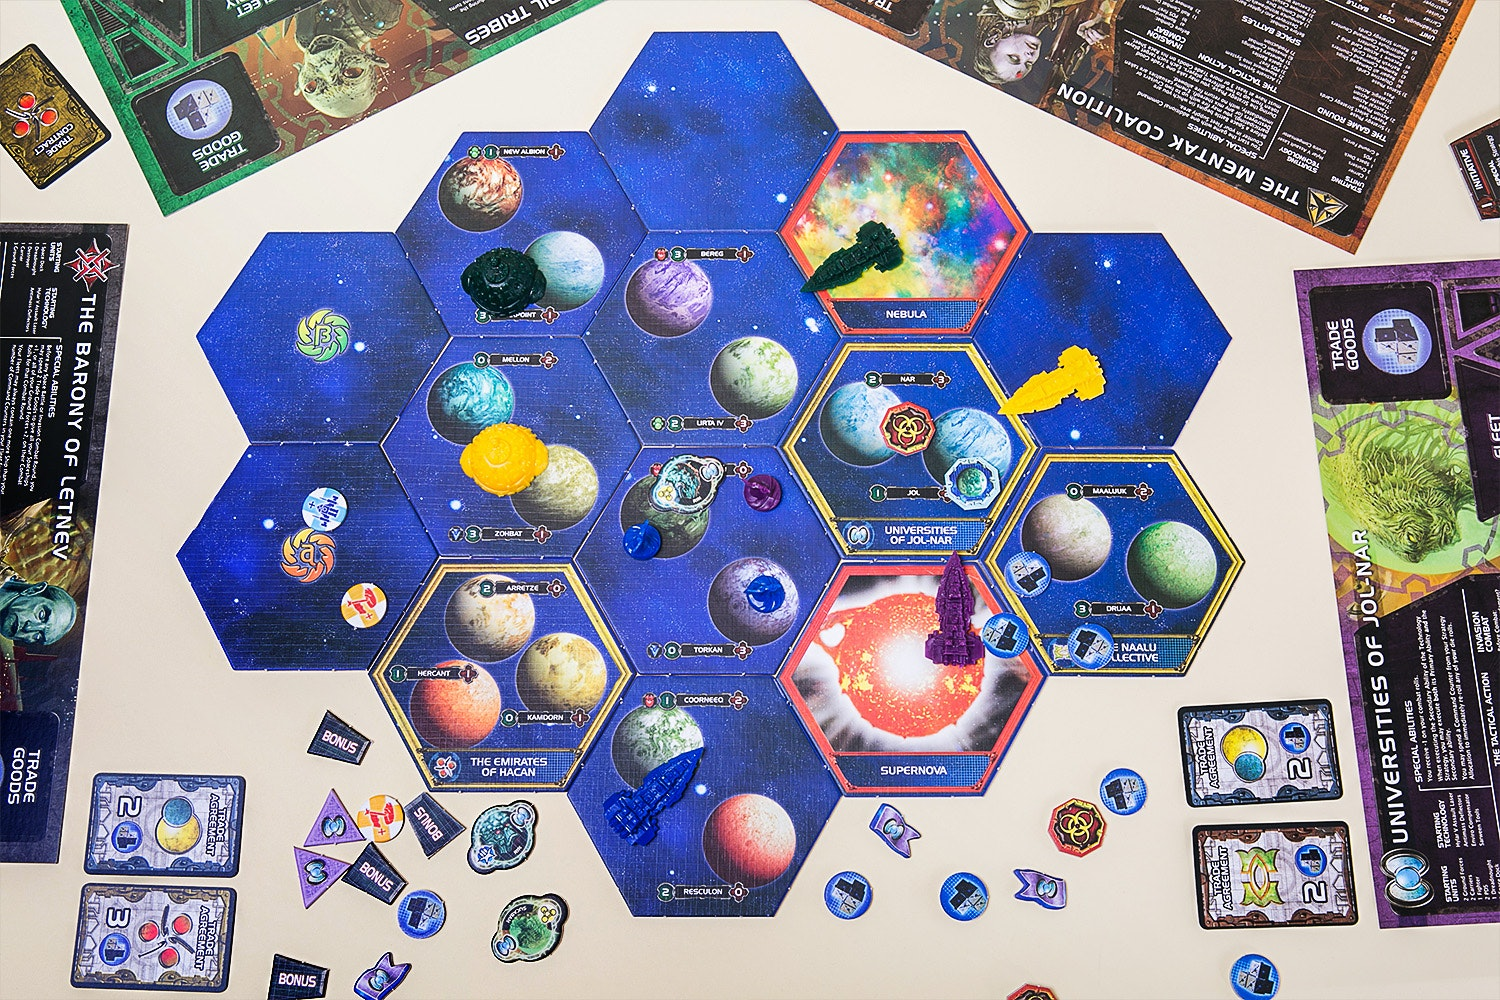 Twilight imperium Bundle